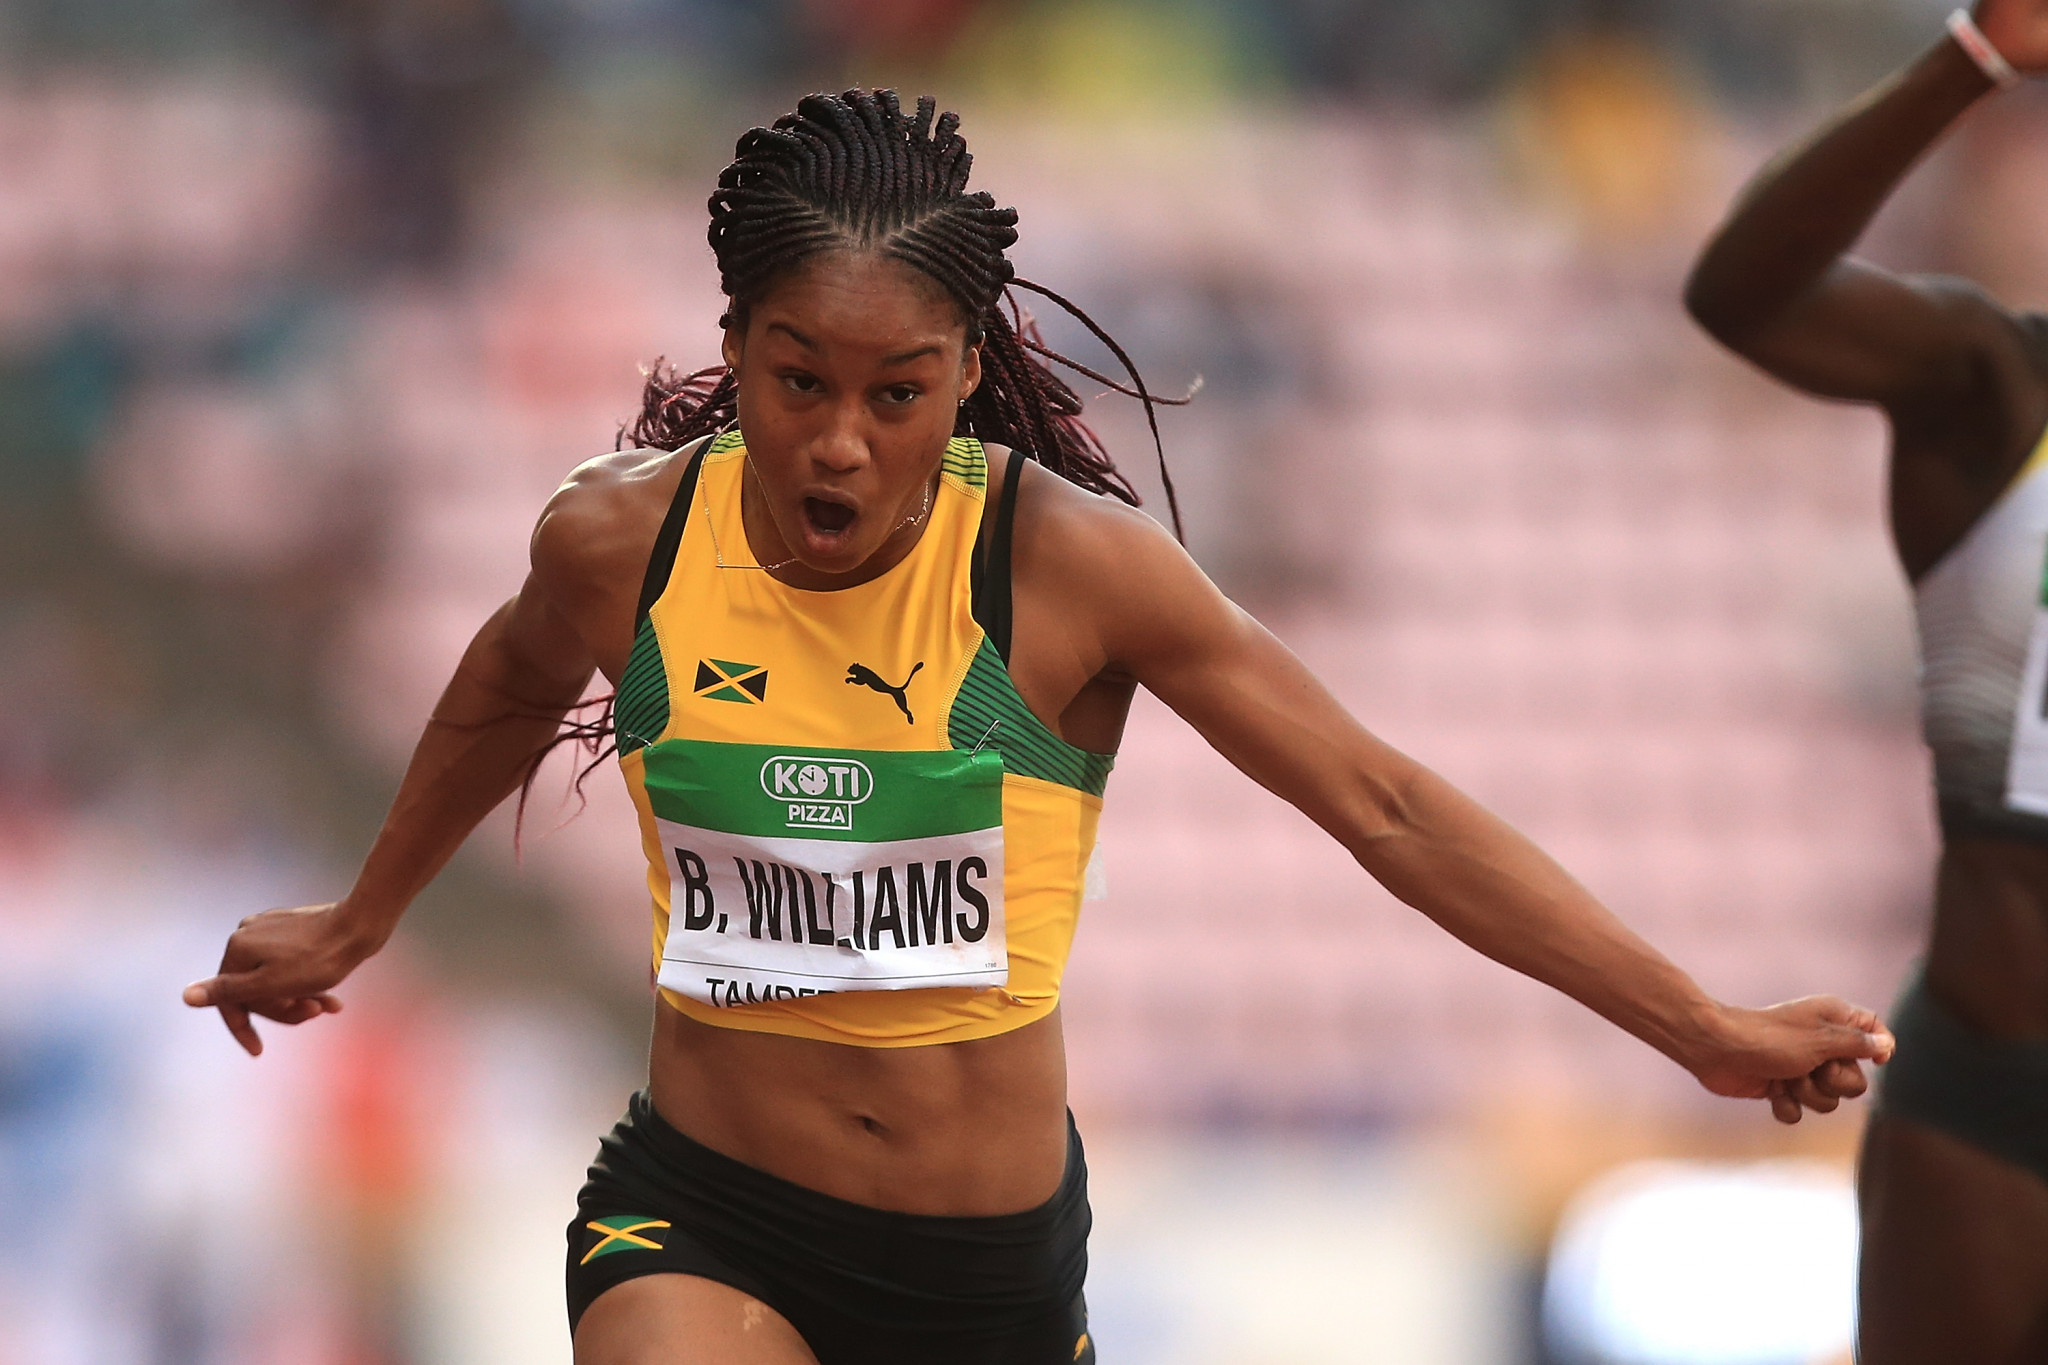 Briana Williams faces a doping hearing just days before the start of the World Championships ©Getty Images